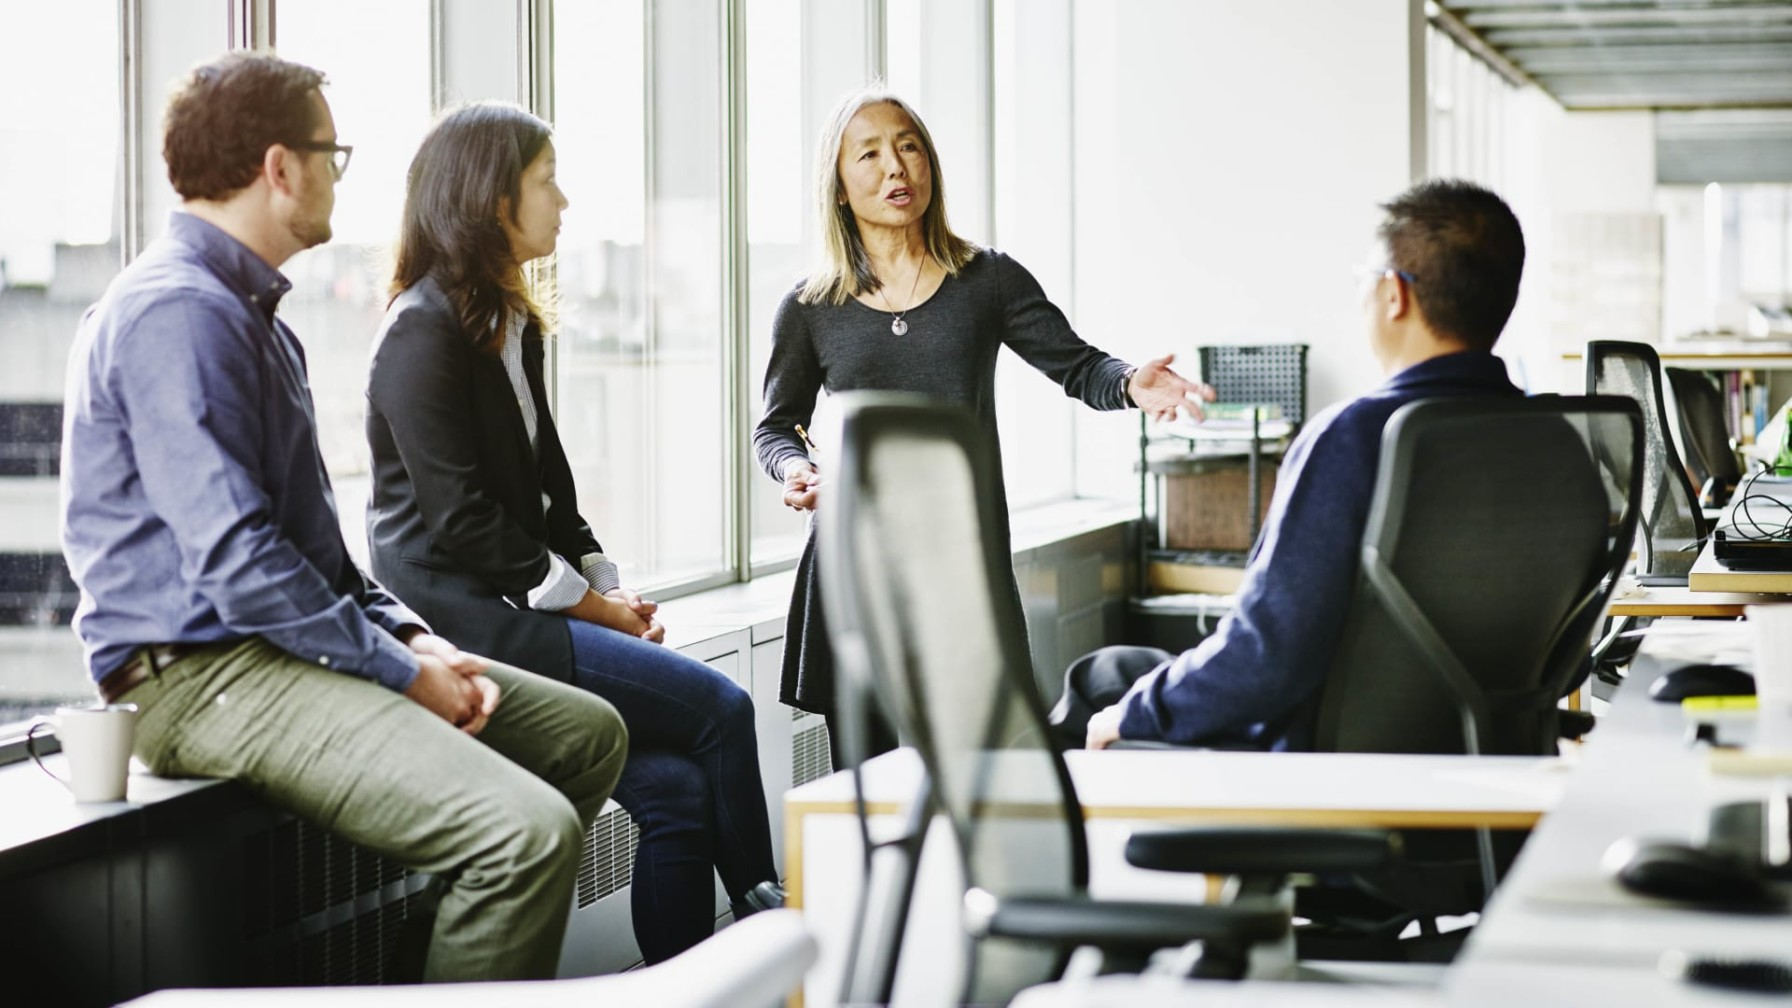 Leader working to reduce employee anxiety